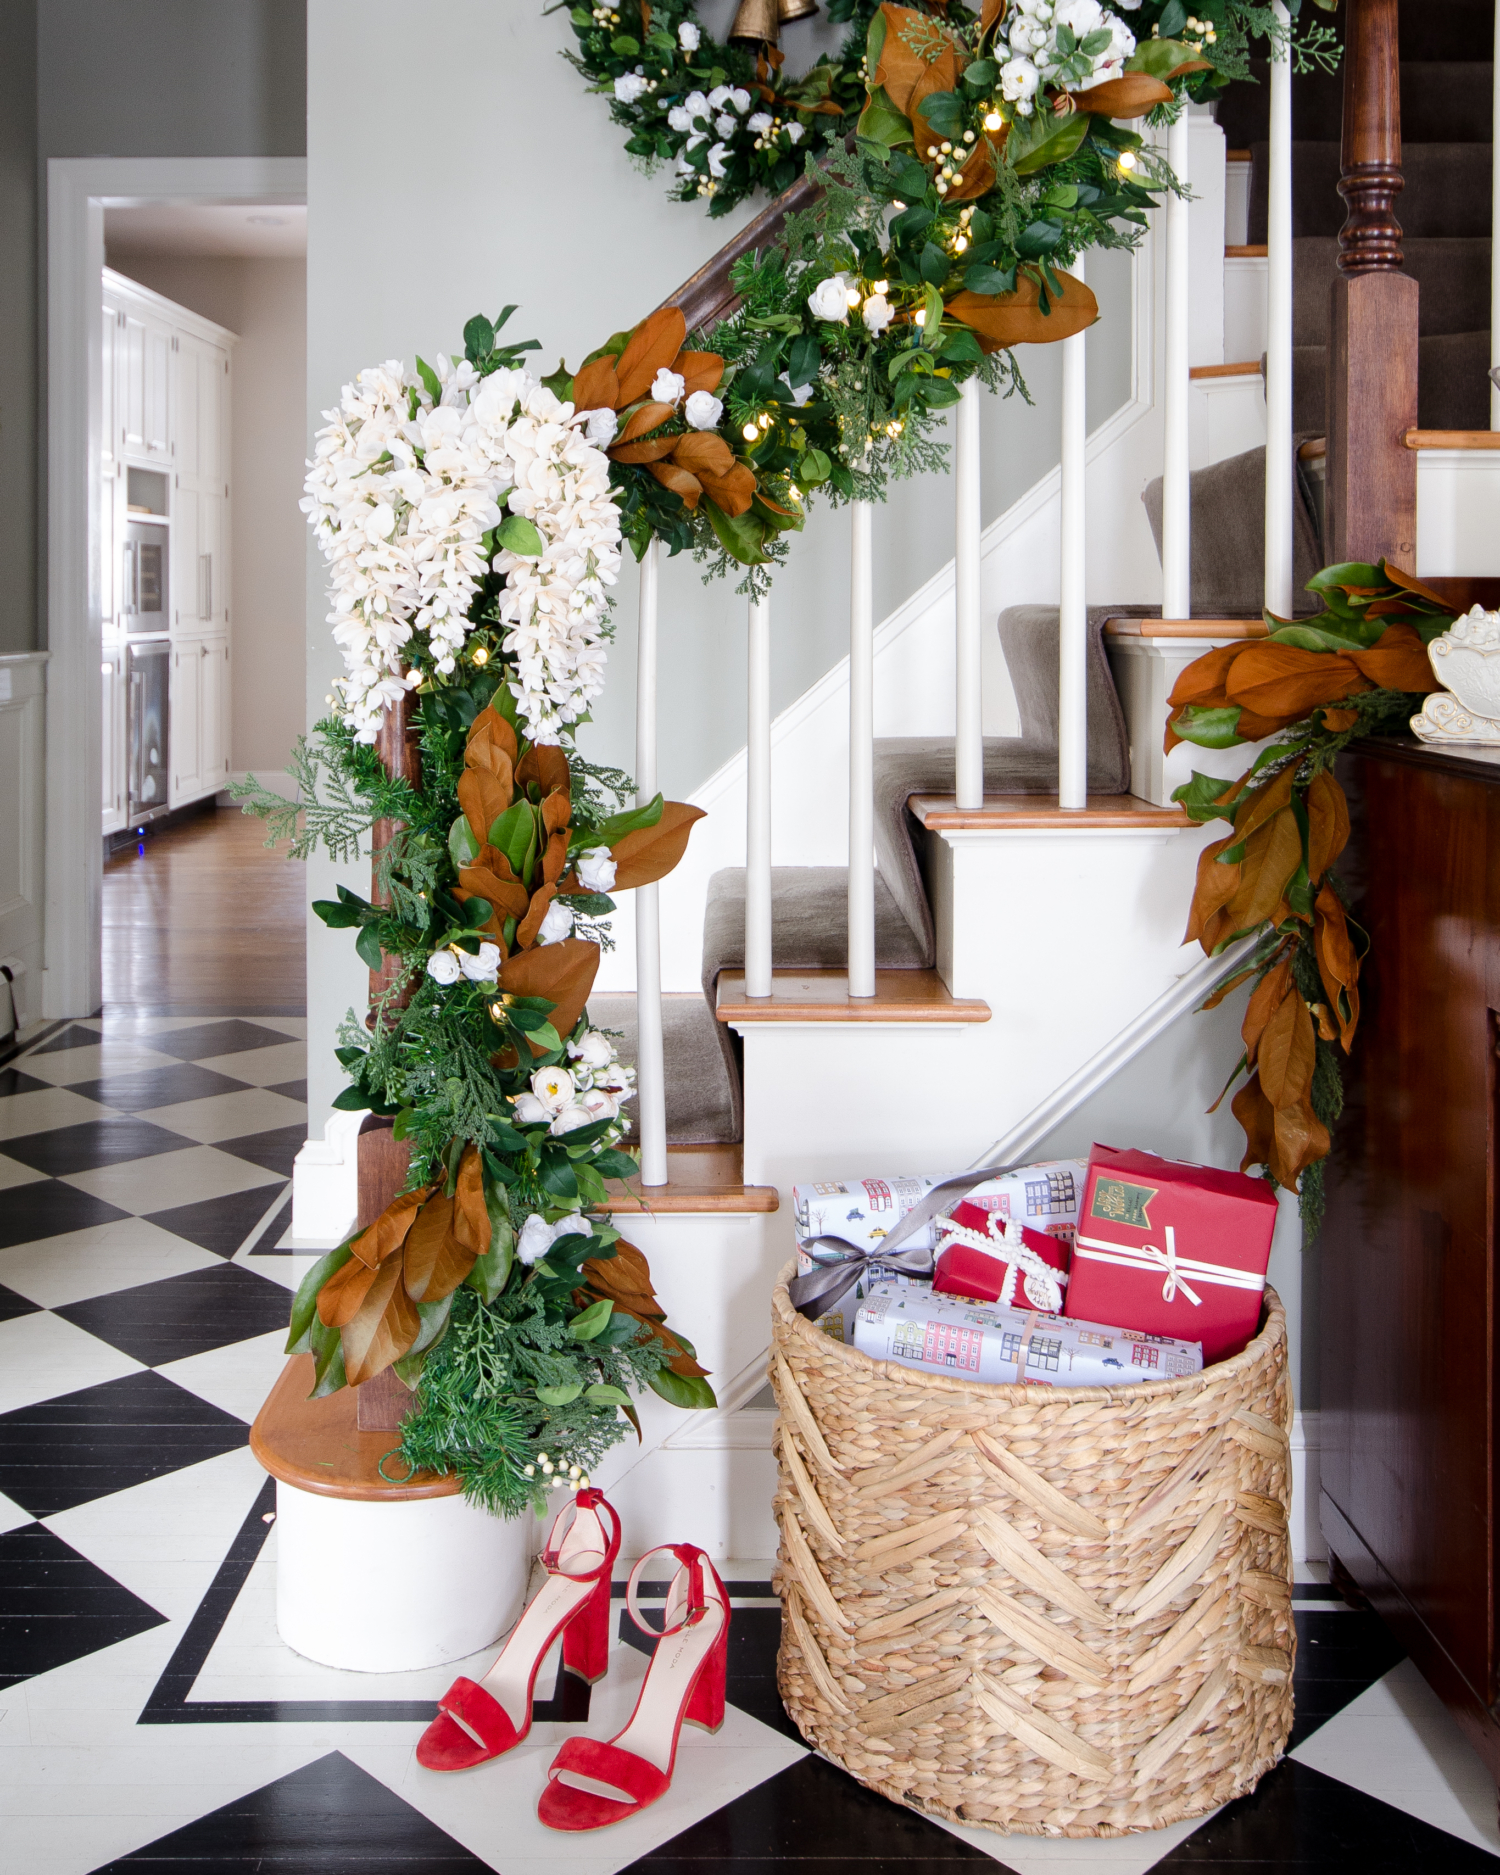 Beautiful banister garland with magnolia leaves and white flowers